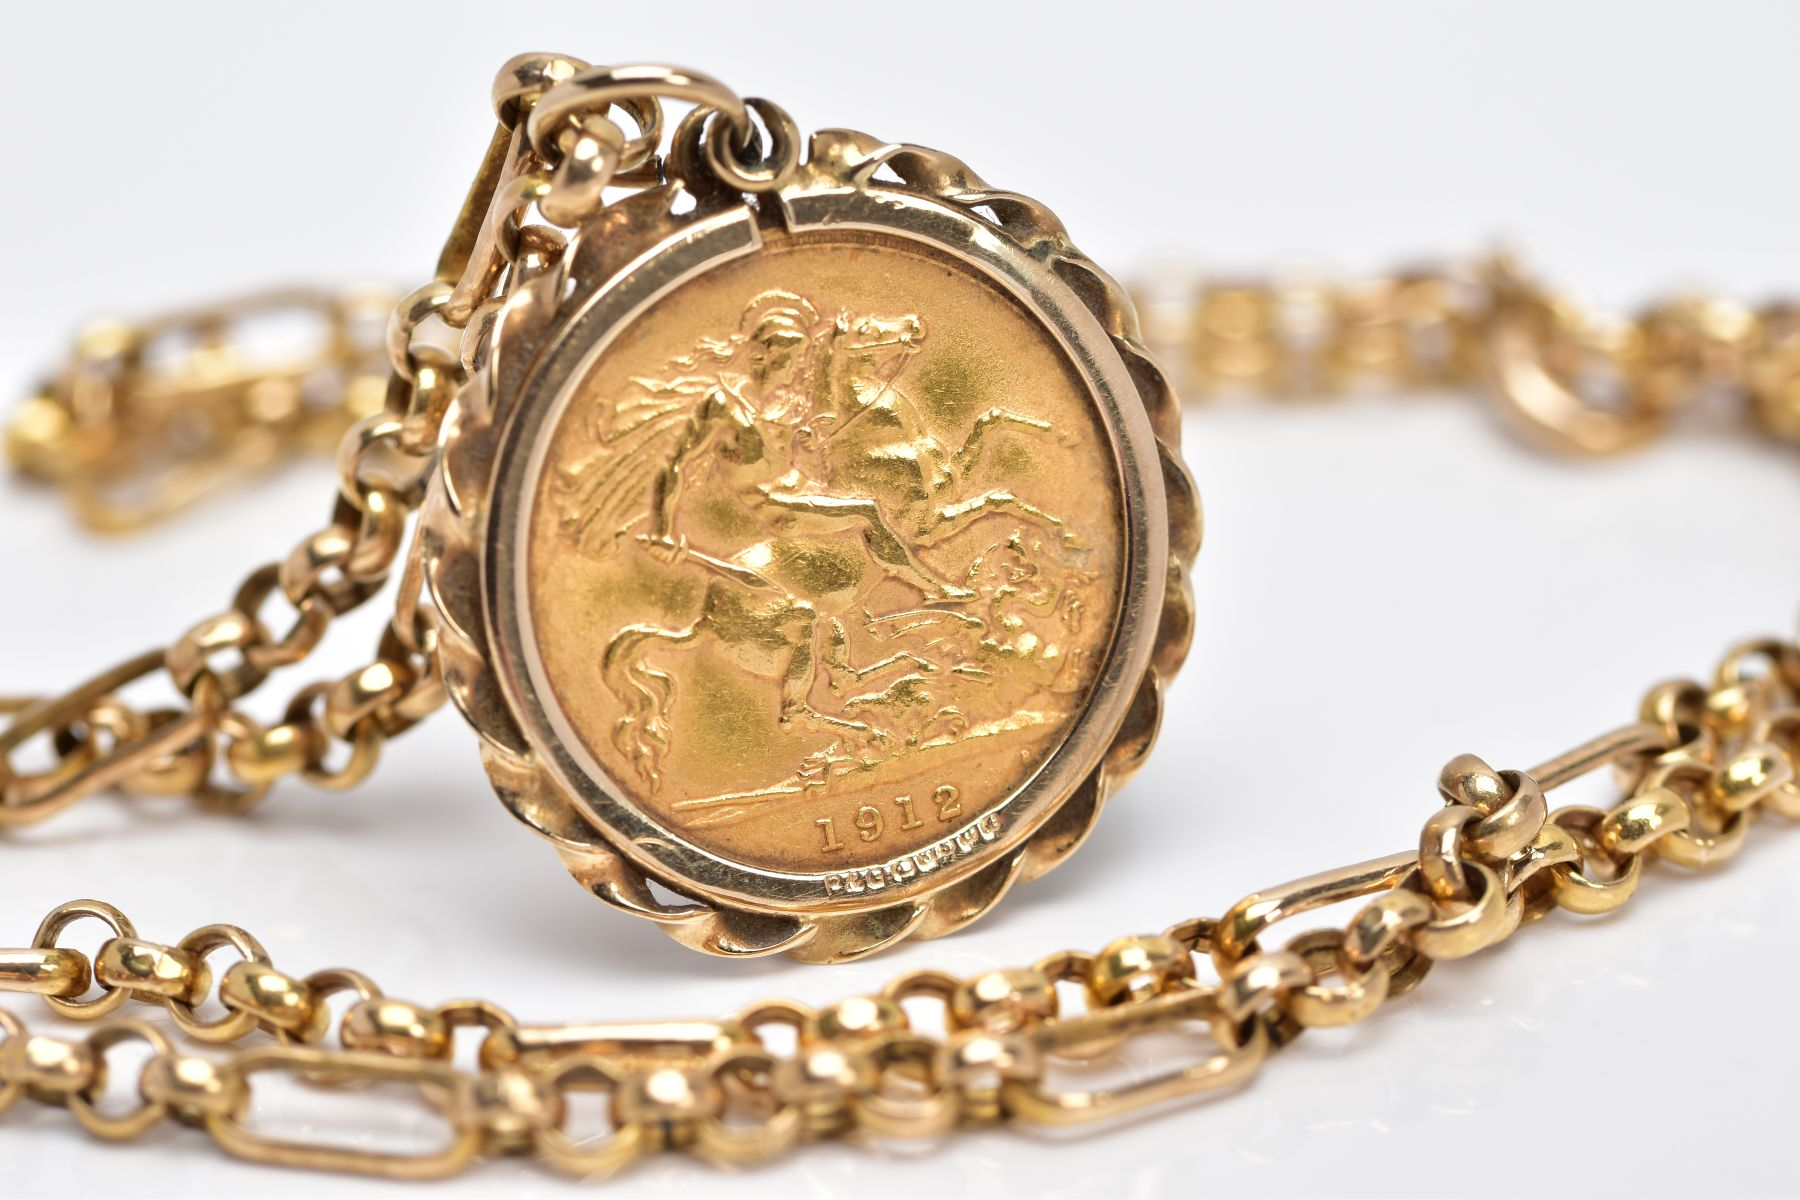 A MOUNTED GEORGIAN HALF SOVEREIGN PENDANT NECKLET, the half sovereign dated 1912, obverse - Image 3 of 3